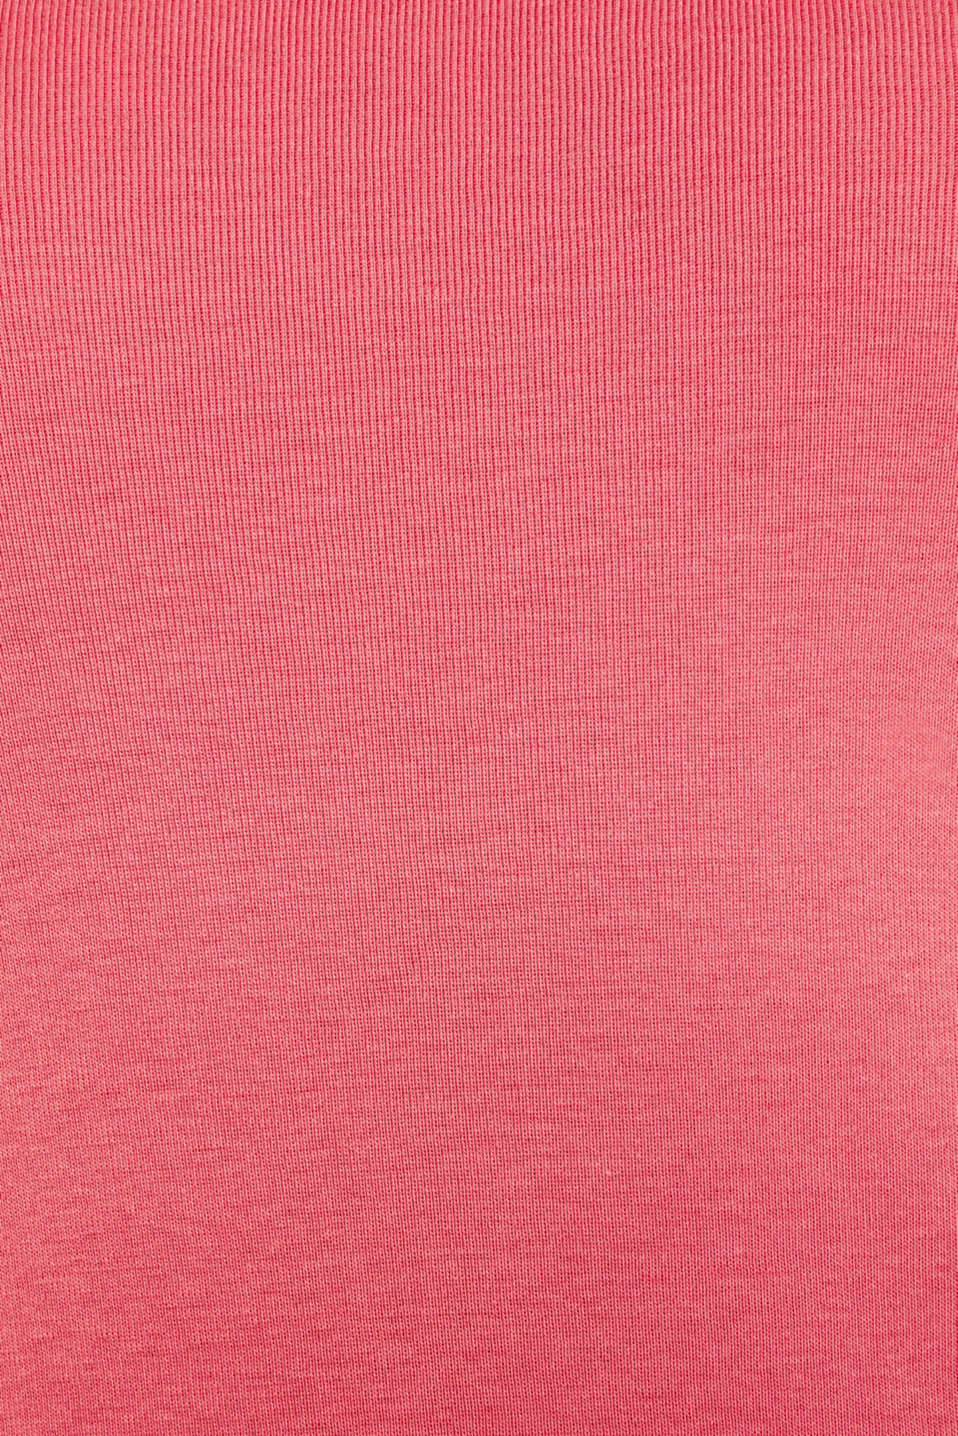 Long sleeve top with a large neckline, 100% cotton, BLUSH 4, detail image number 4